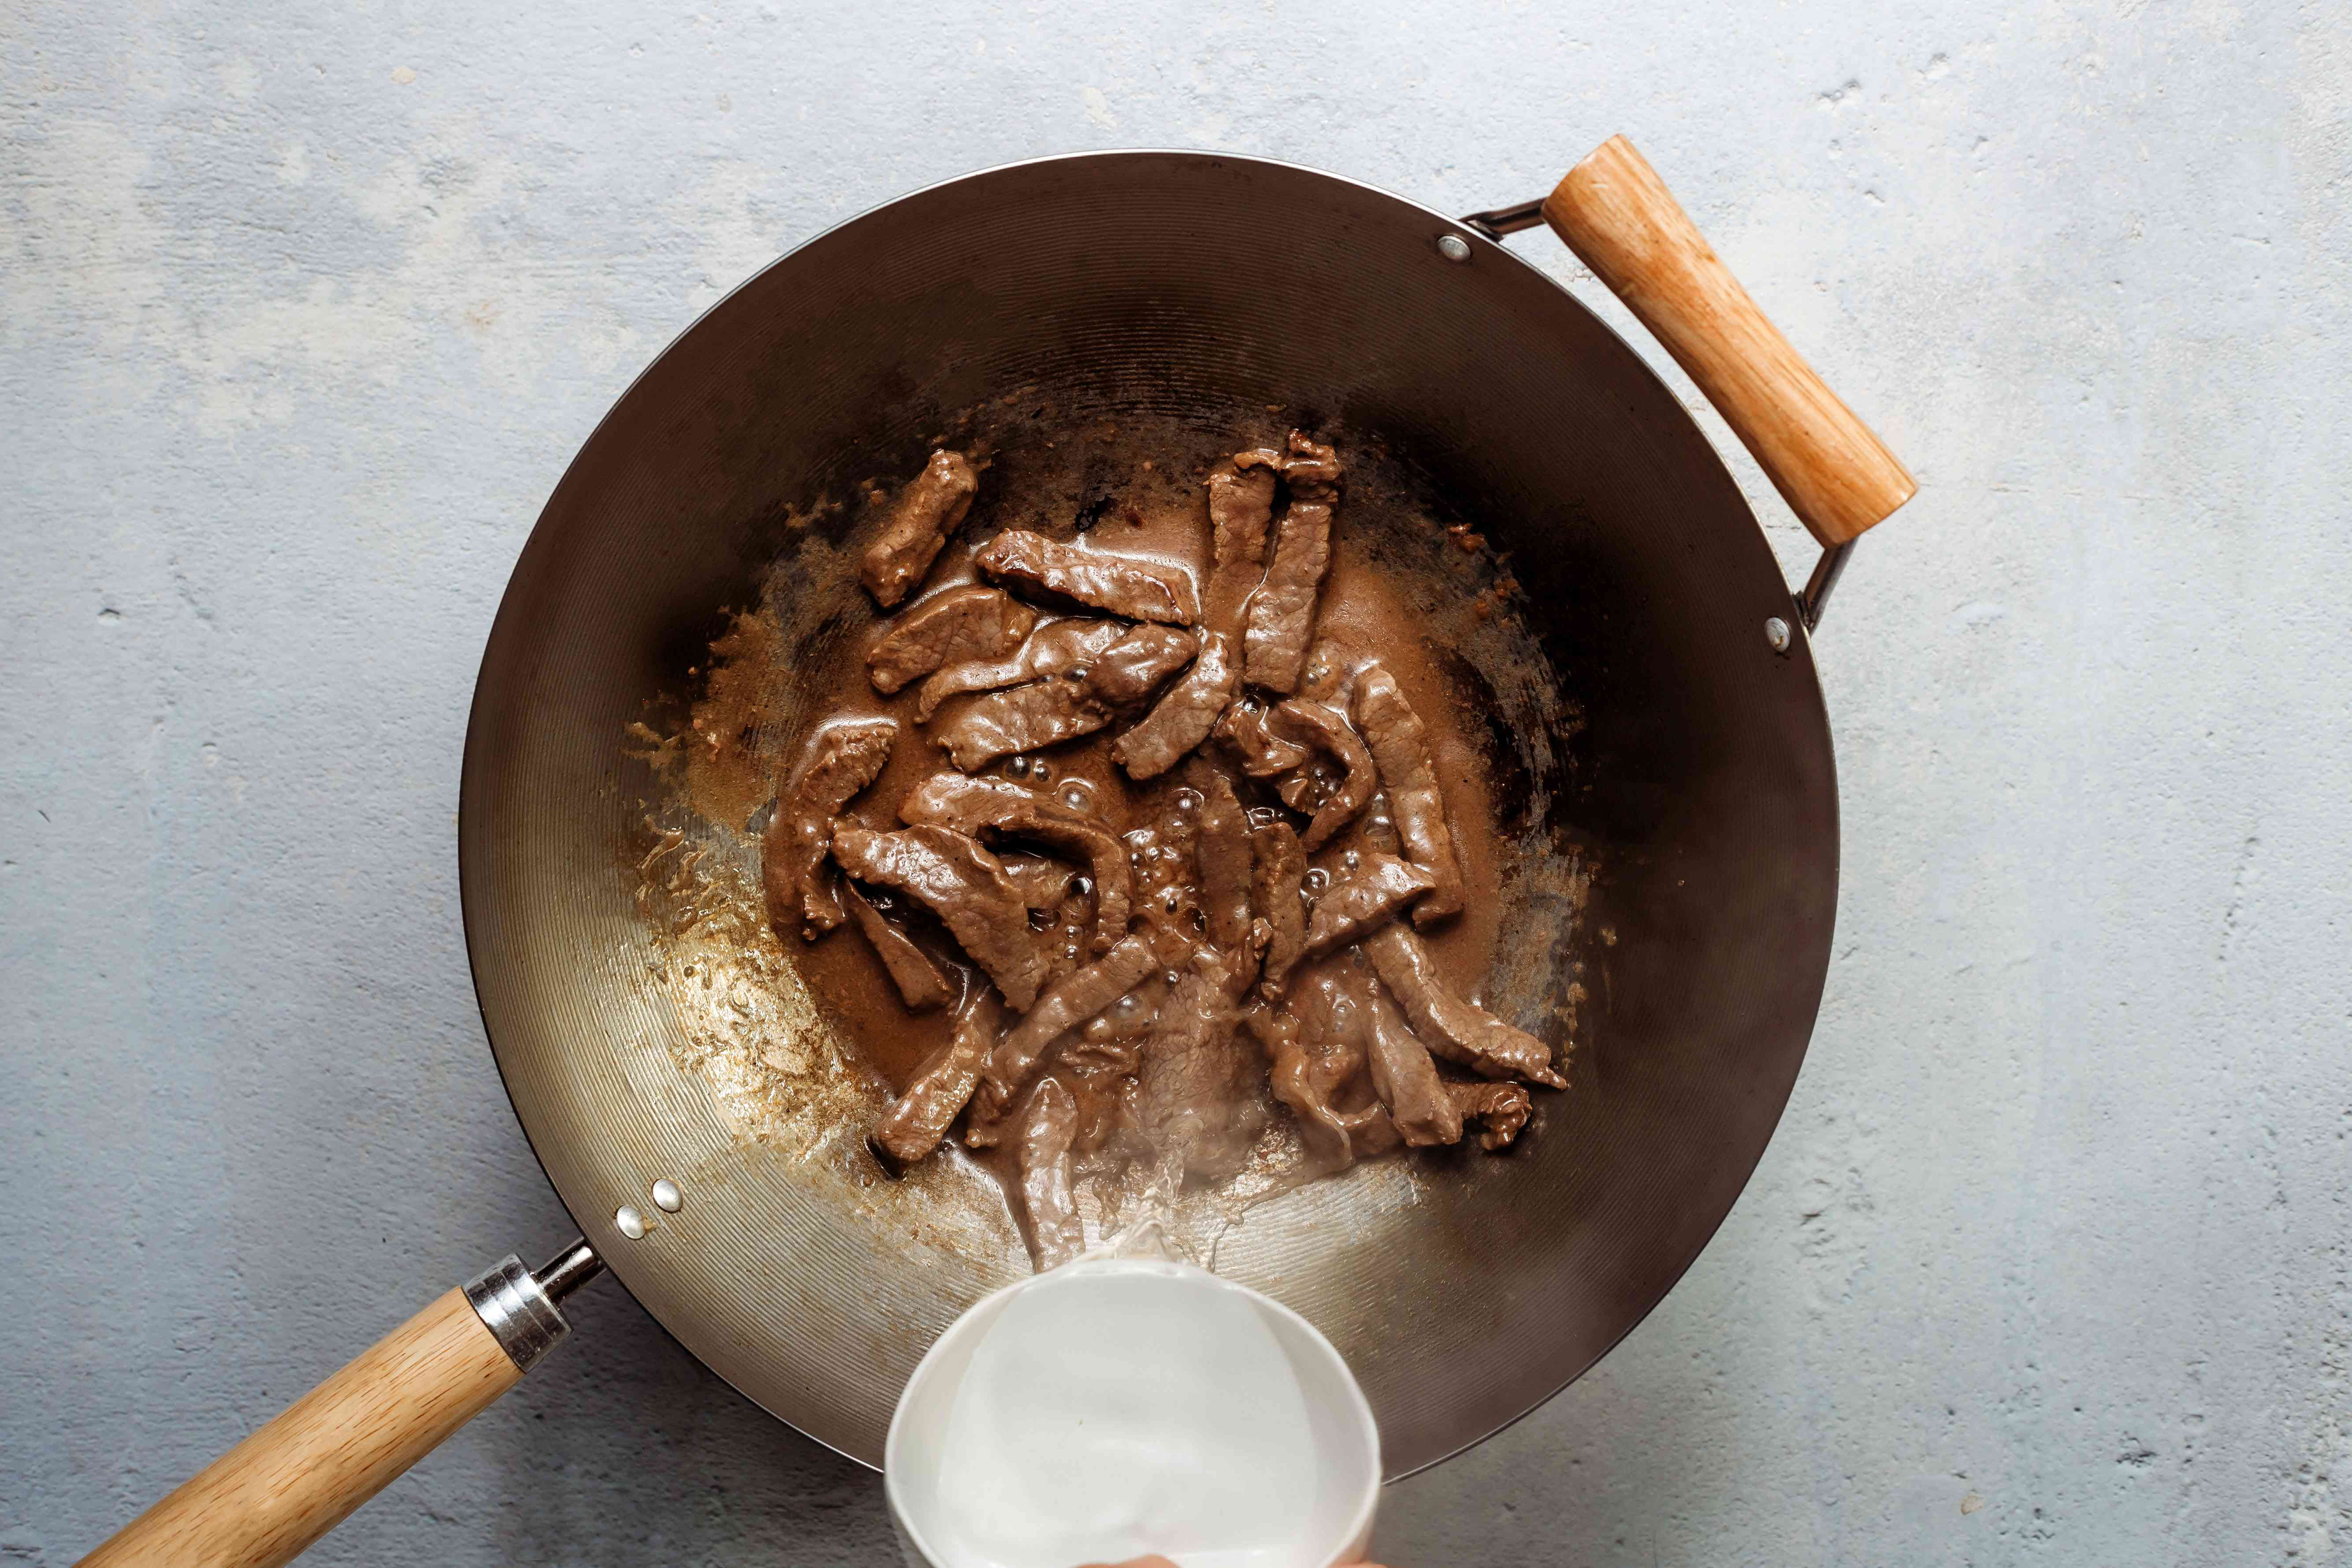 add water to the beef in the wok to form a gravy